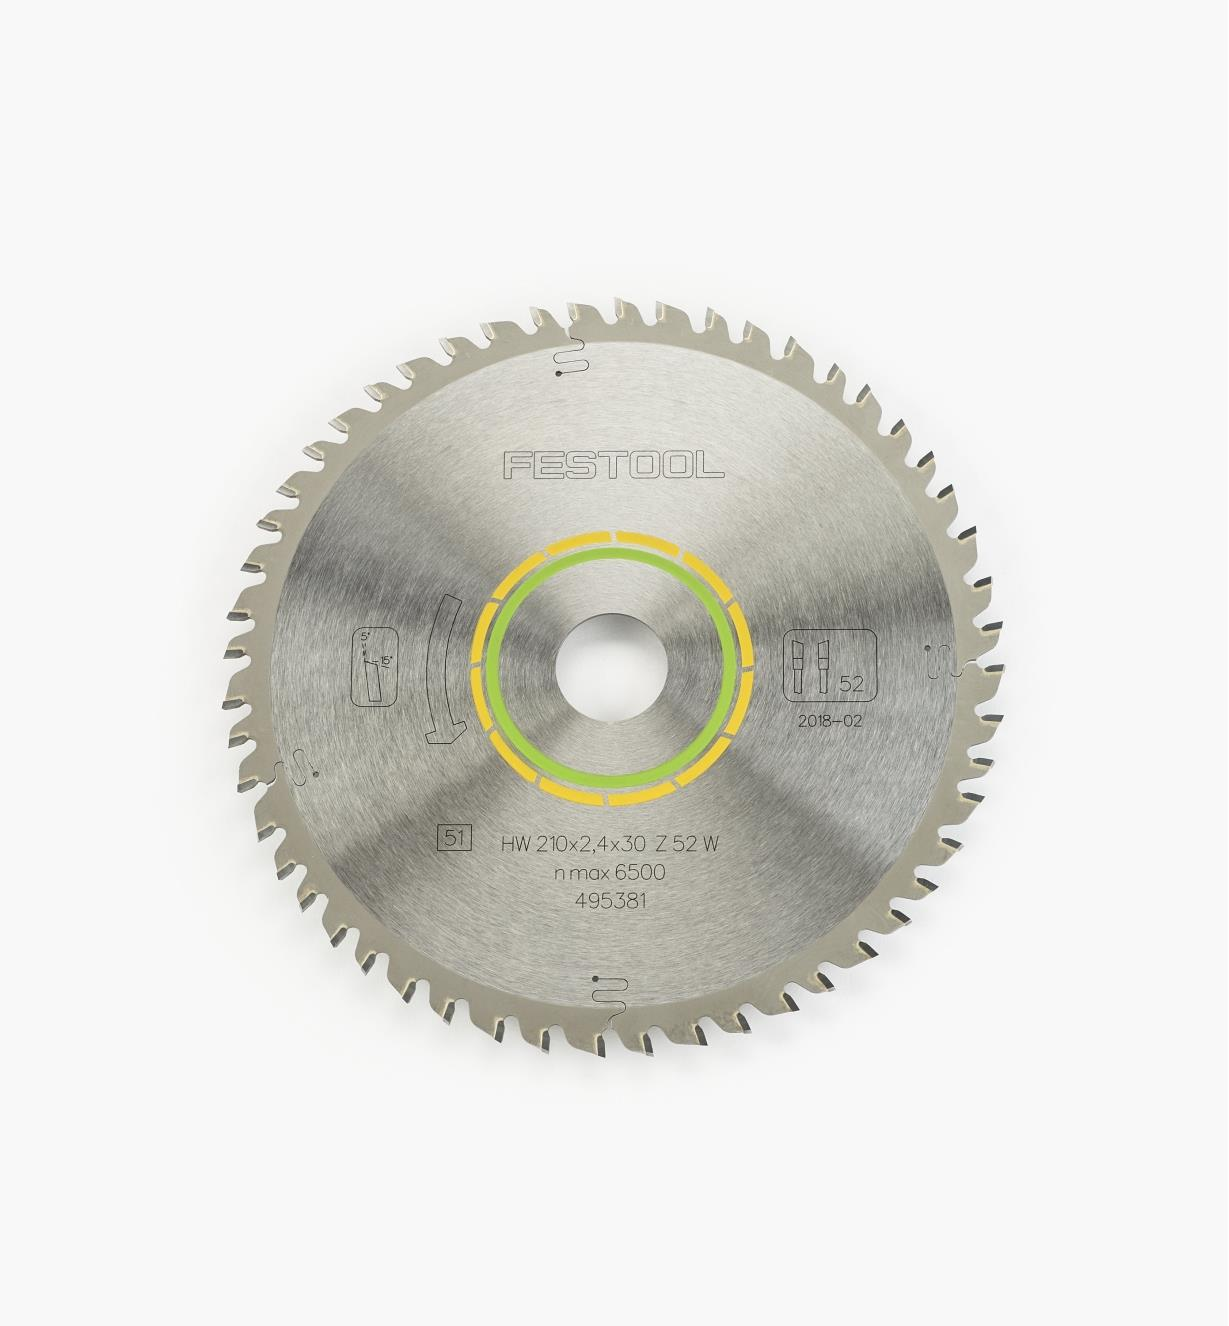 ZA495381 - Fine Tooth TS 75 Saw Blade